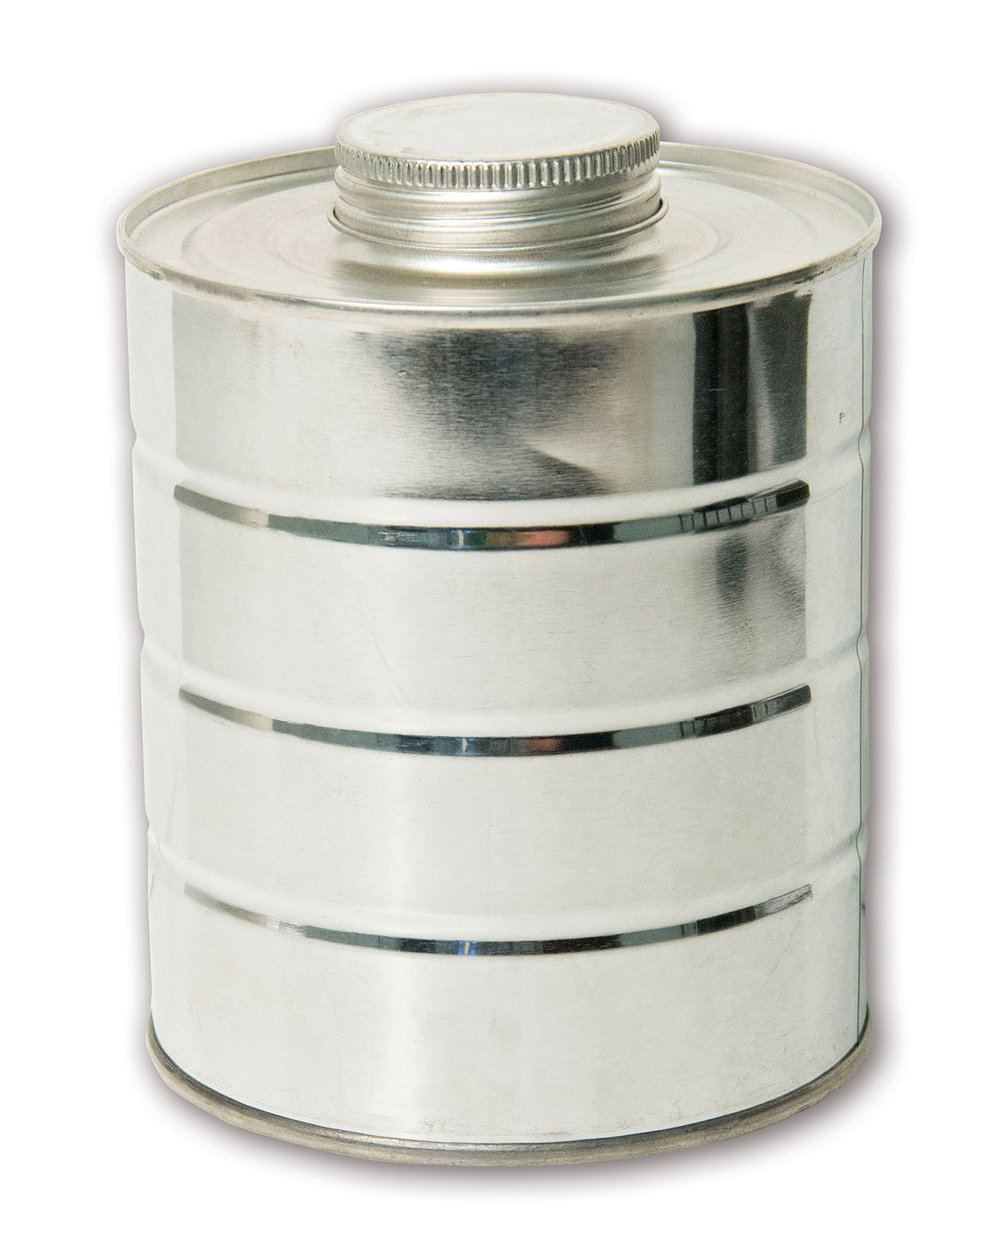 Quart Metal Can#(stainless steel w/cap)#Item ACC2104